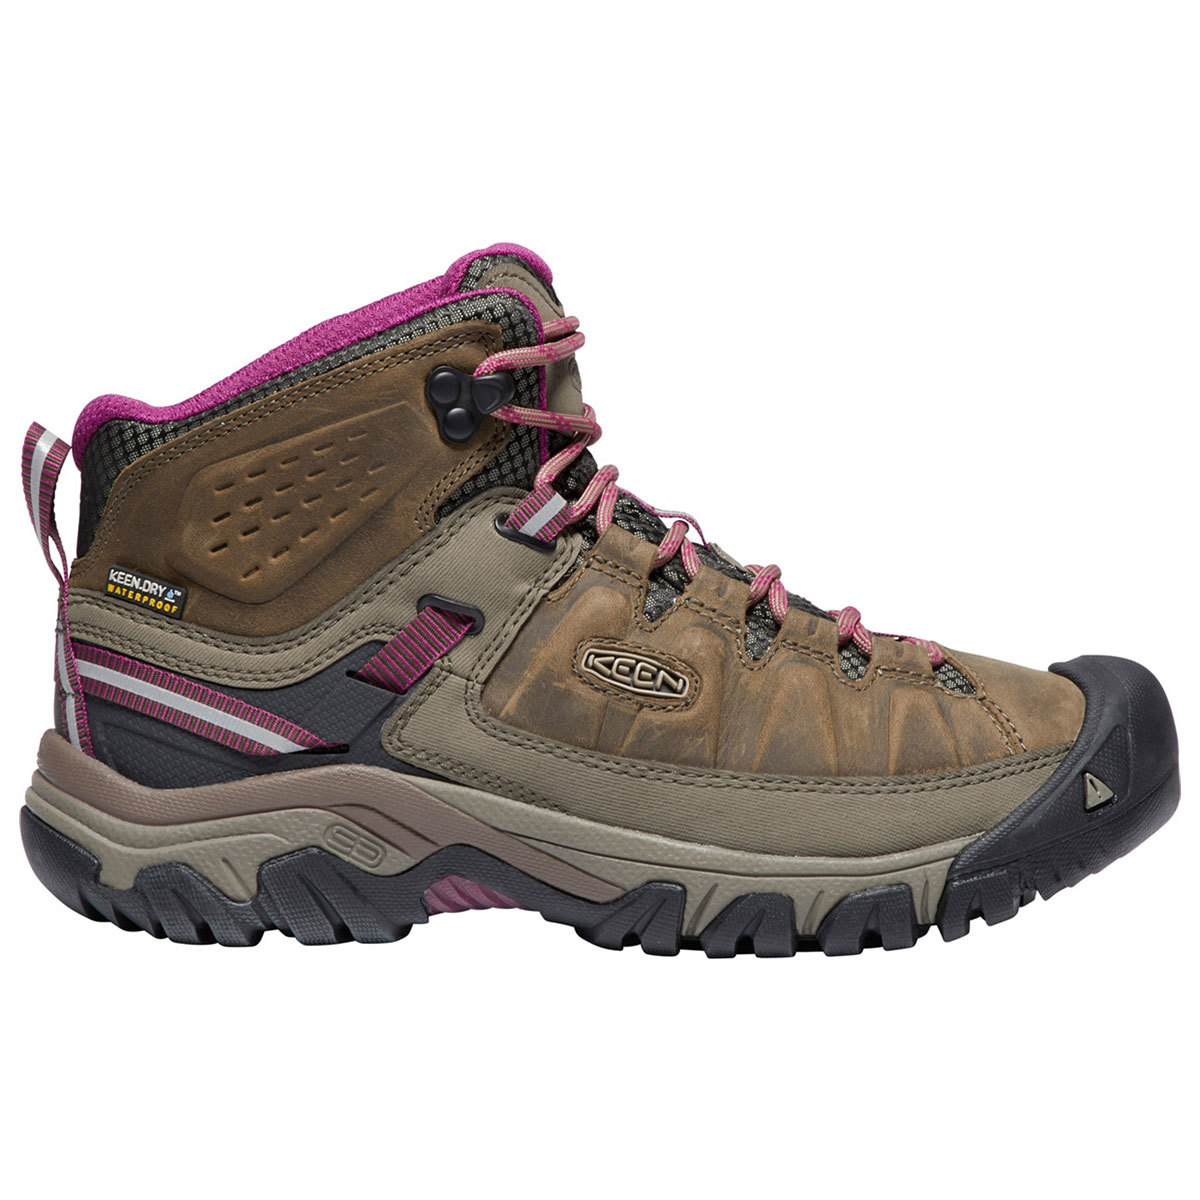 Keen Women's Targhee Iii Waterproof Mid Hiking Boots - Brown, 9.5